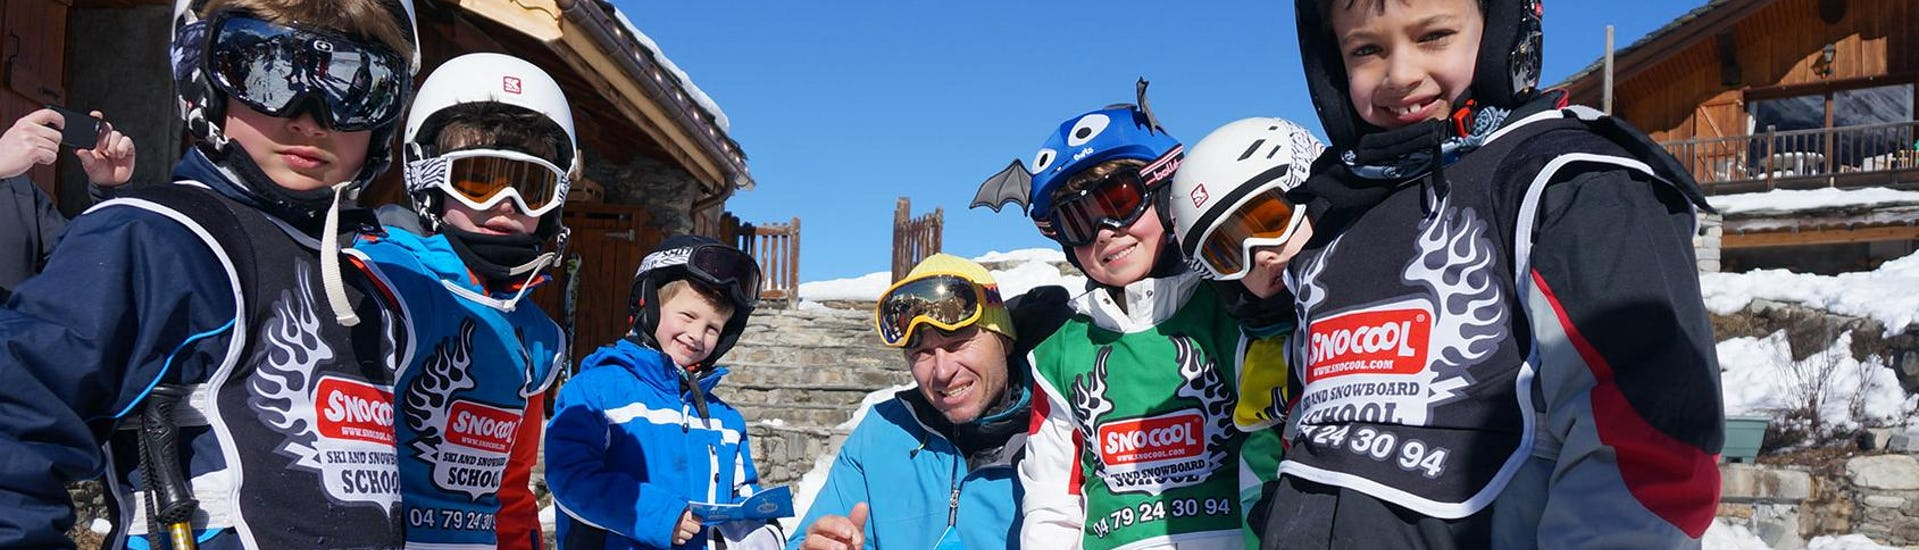 Children are having fun during group ski lessons in the ski school Snocool which offers lessons in Tignes, Val d'Isère and Sainte-Foy-Tarentaise.